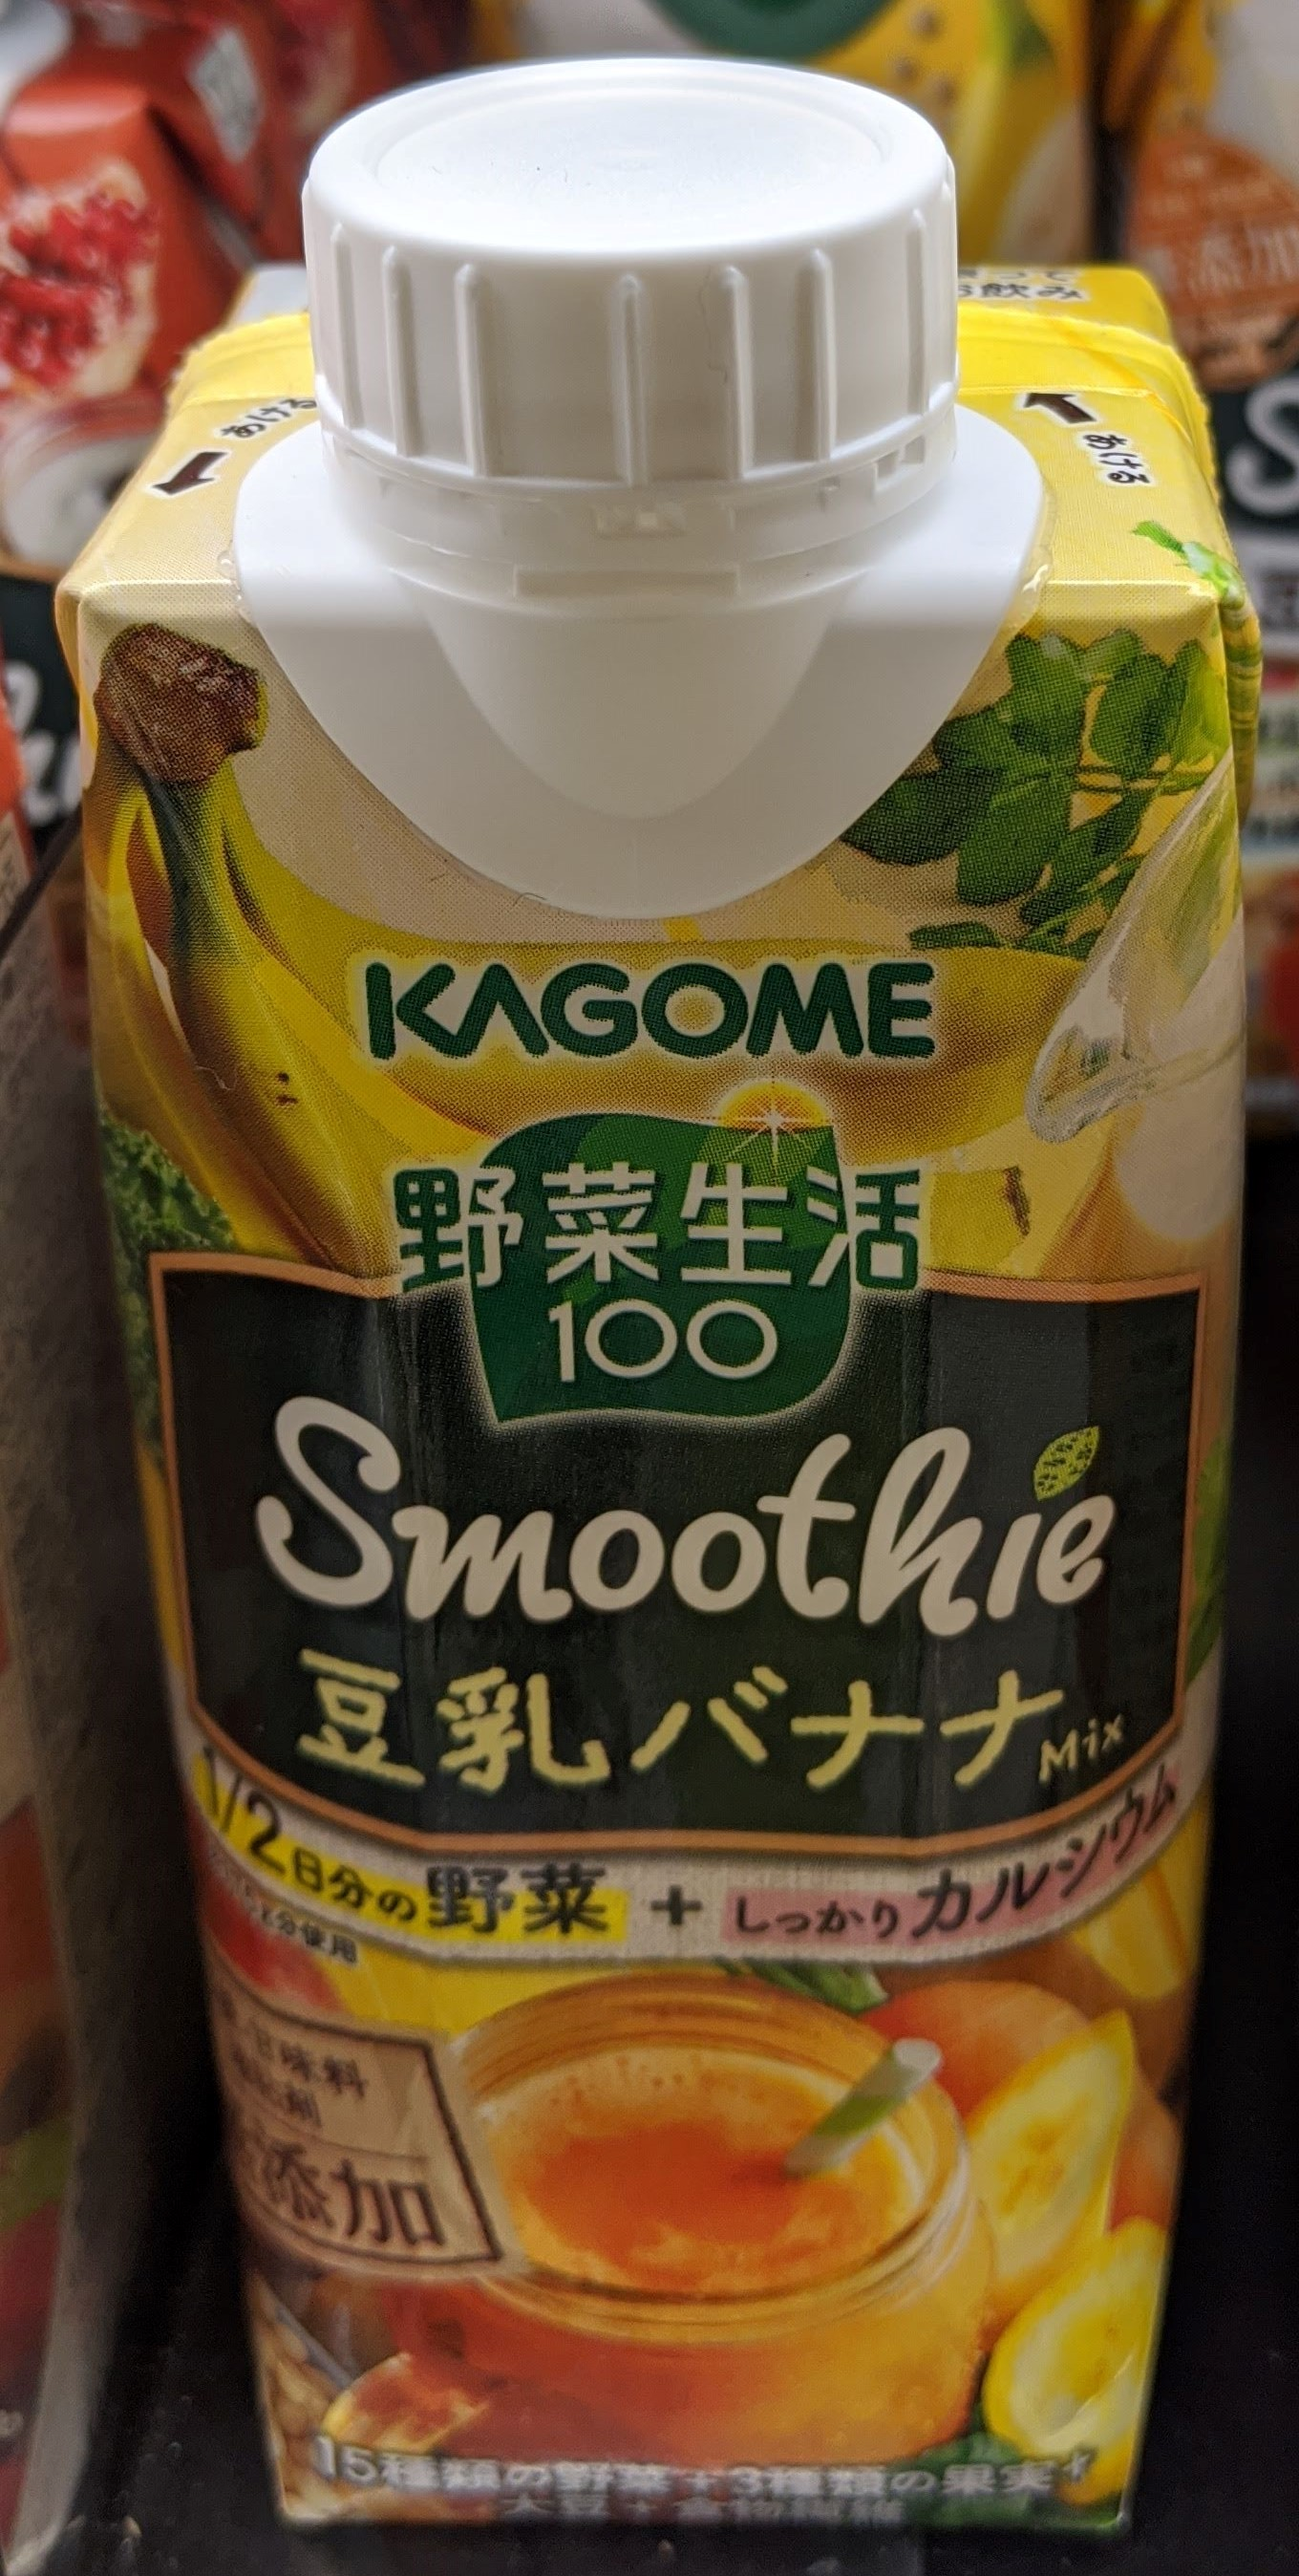 Kagome vegetable life smoothie tonyuu banana old packaging front of package 2